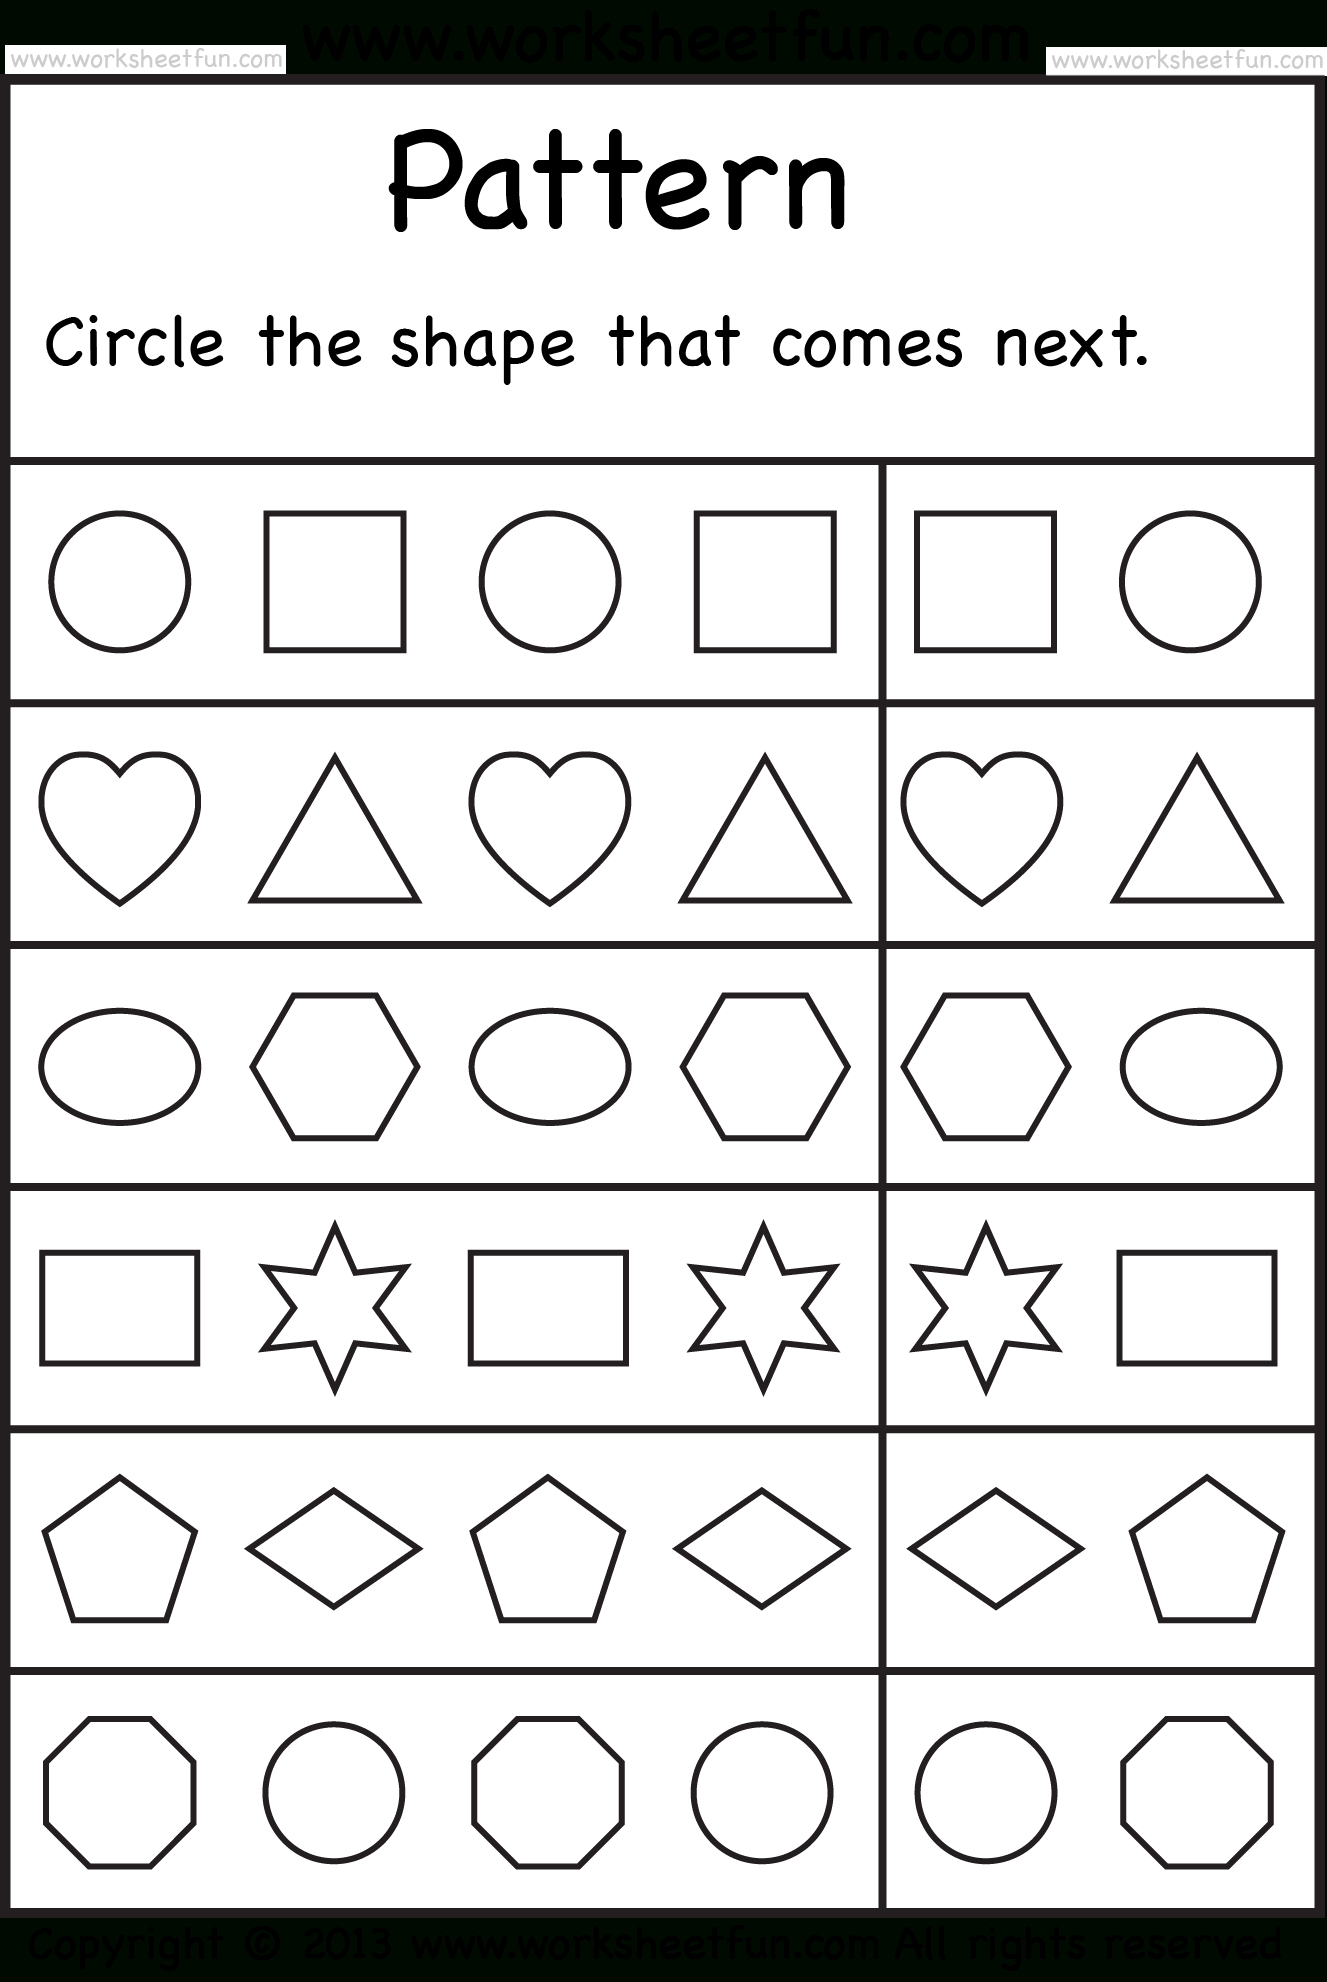 Free Printable Worksheets – Worksheetfun / Free Printable | Printable Worksheets Com